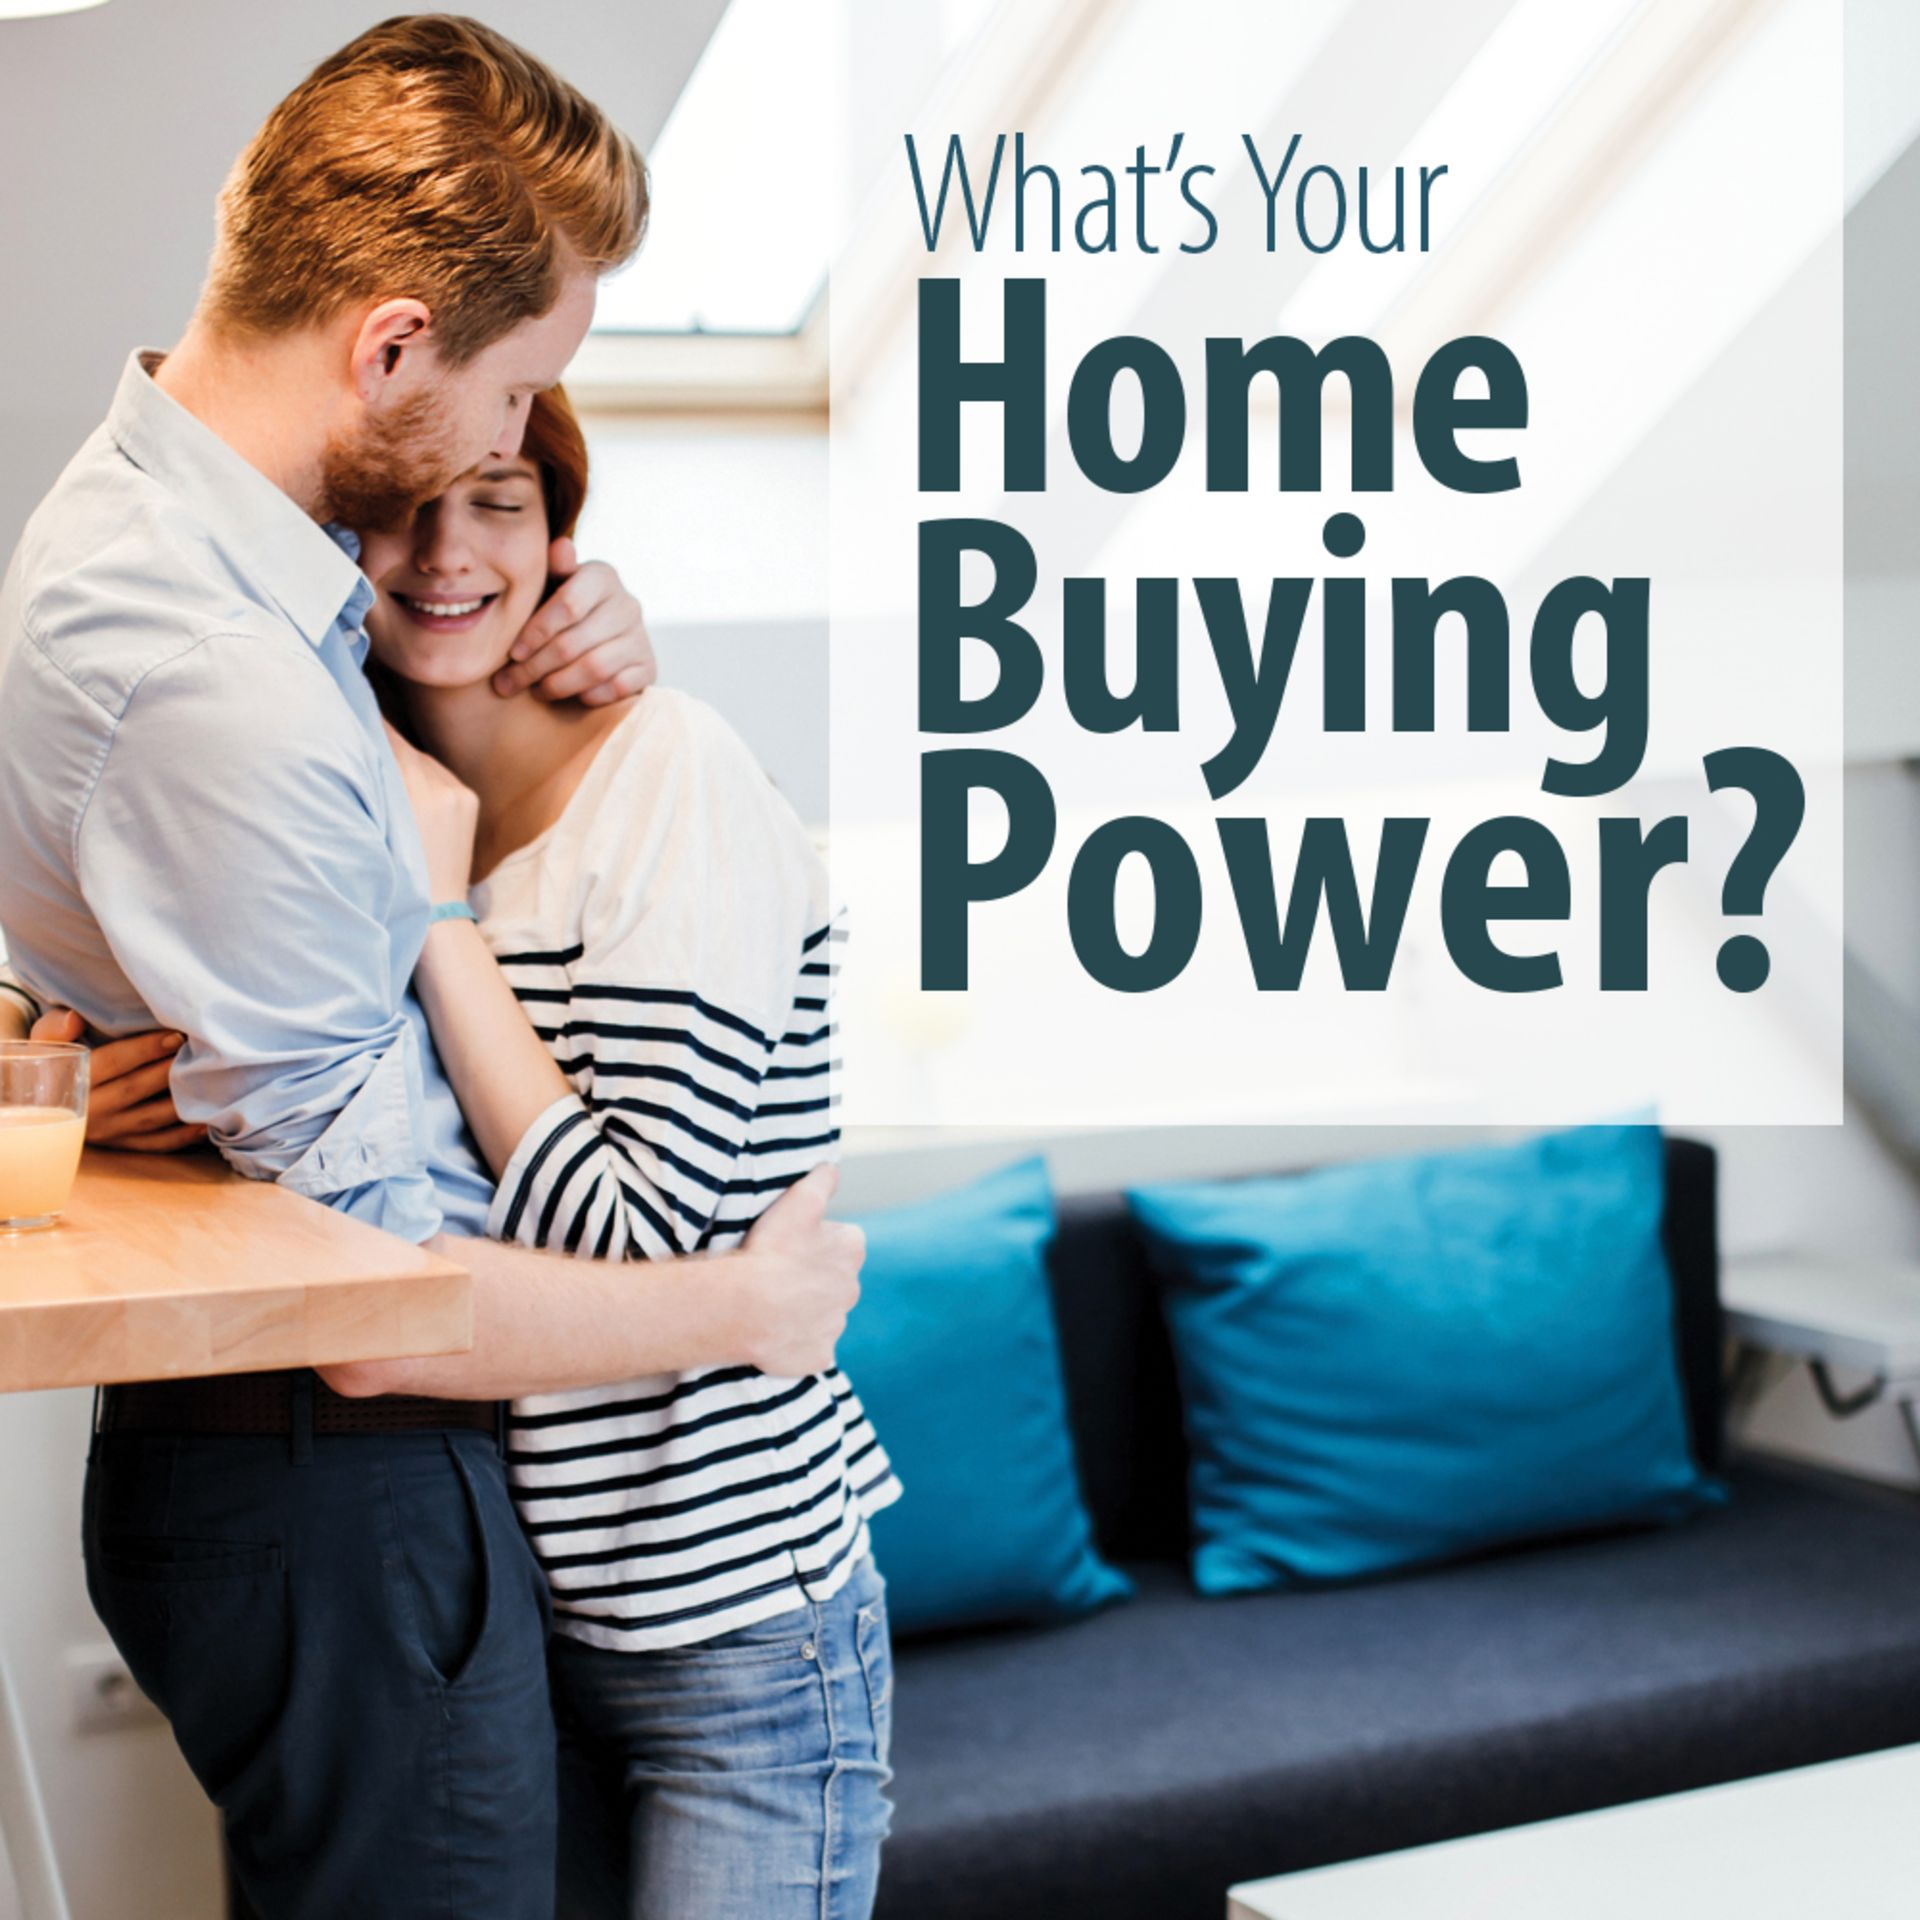 What is Your Home Buying Power